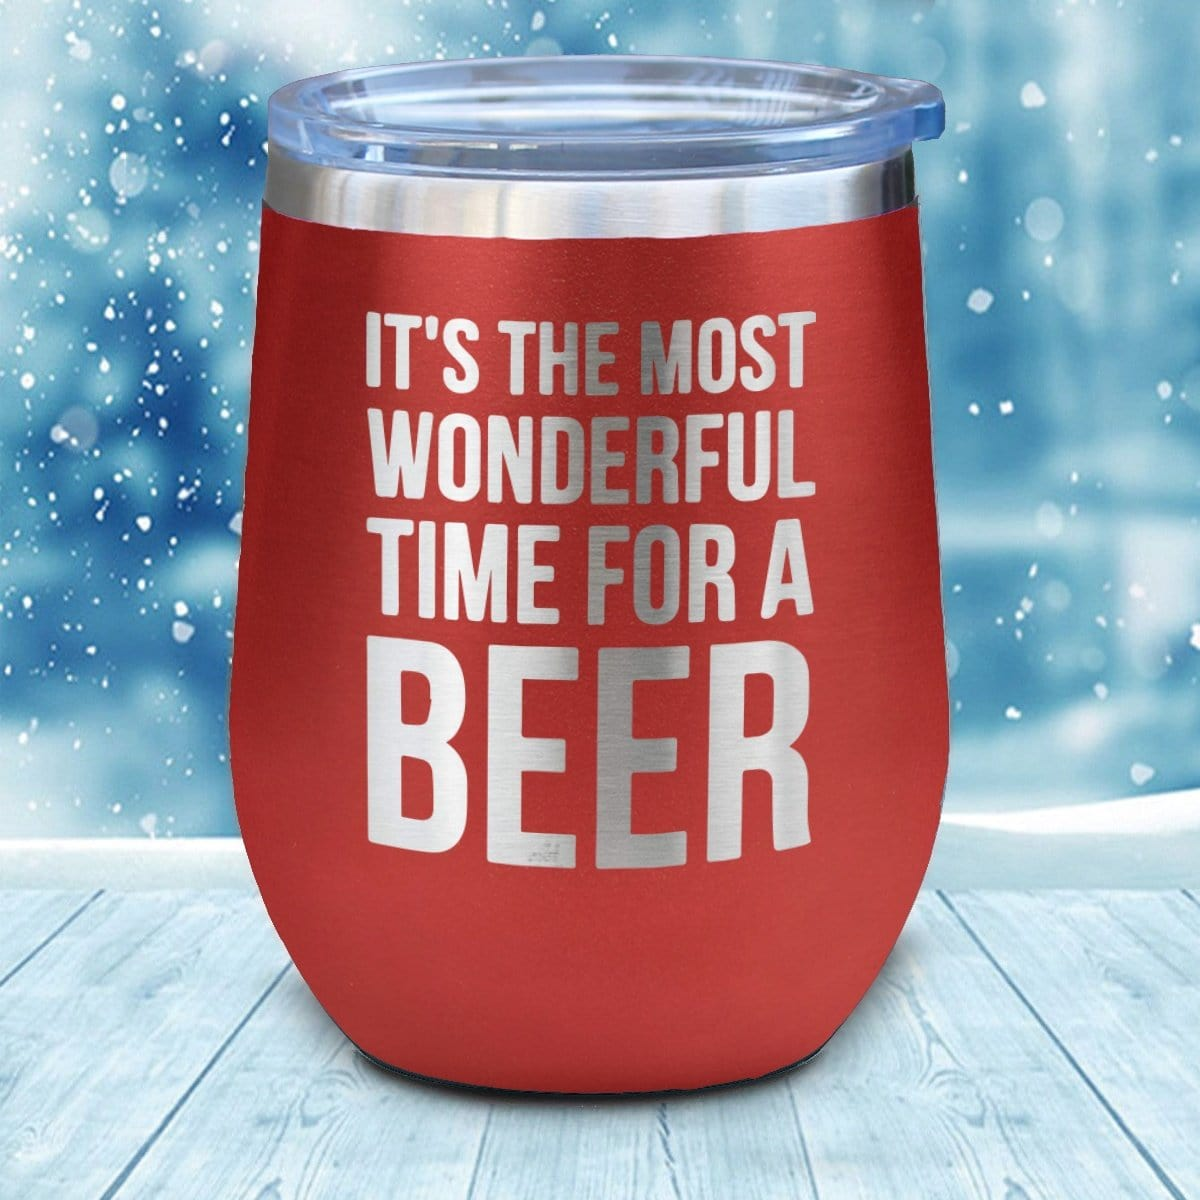 Wonderful Time For A Beer Christmas Wine Glass